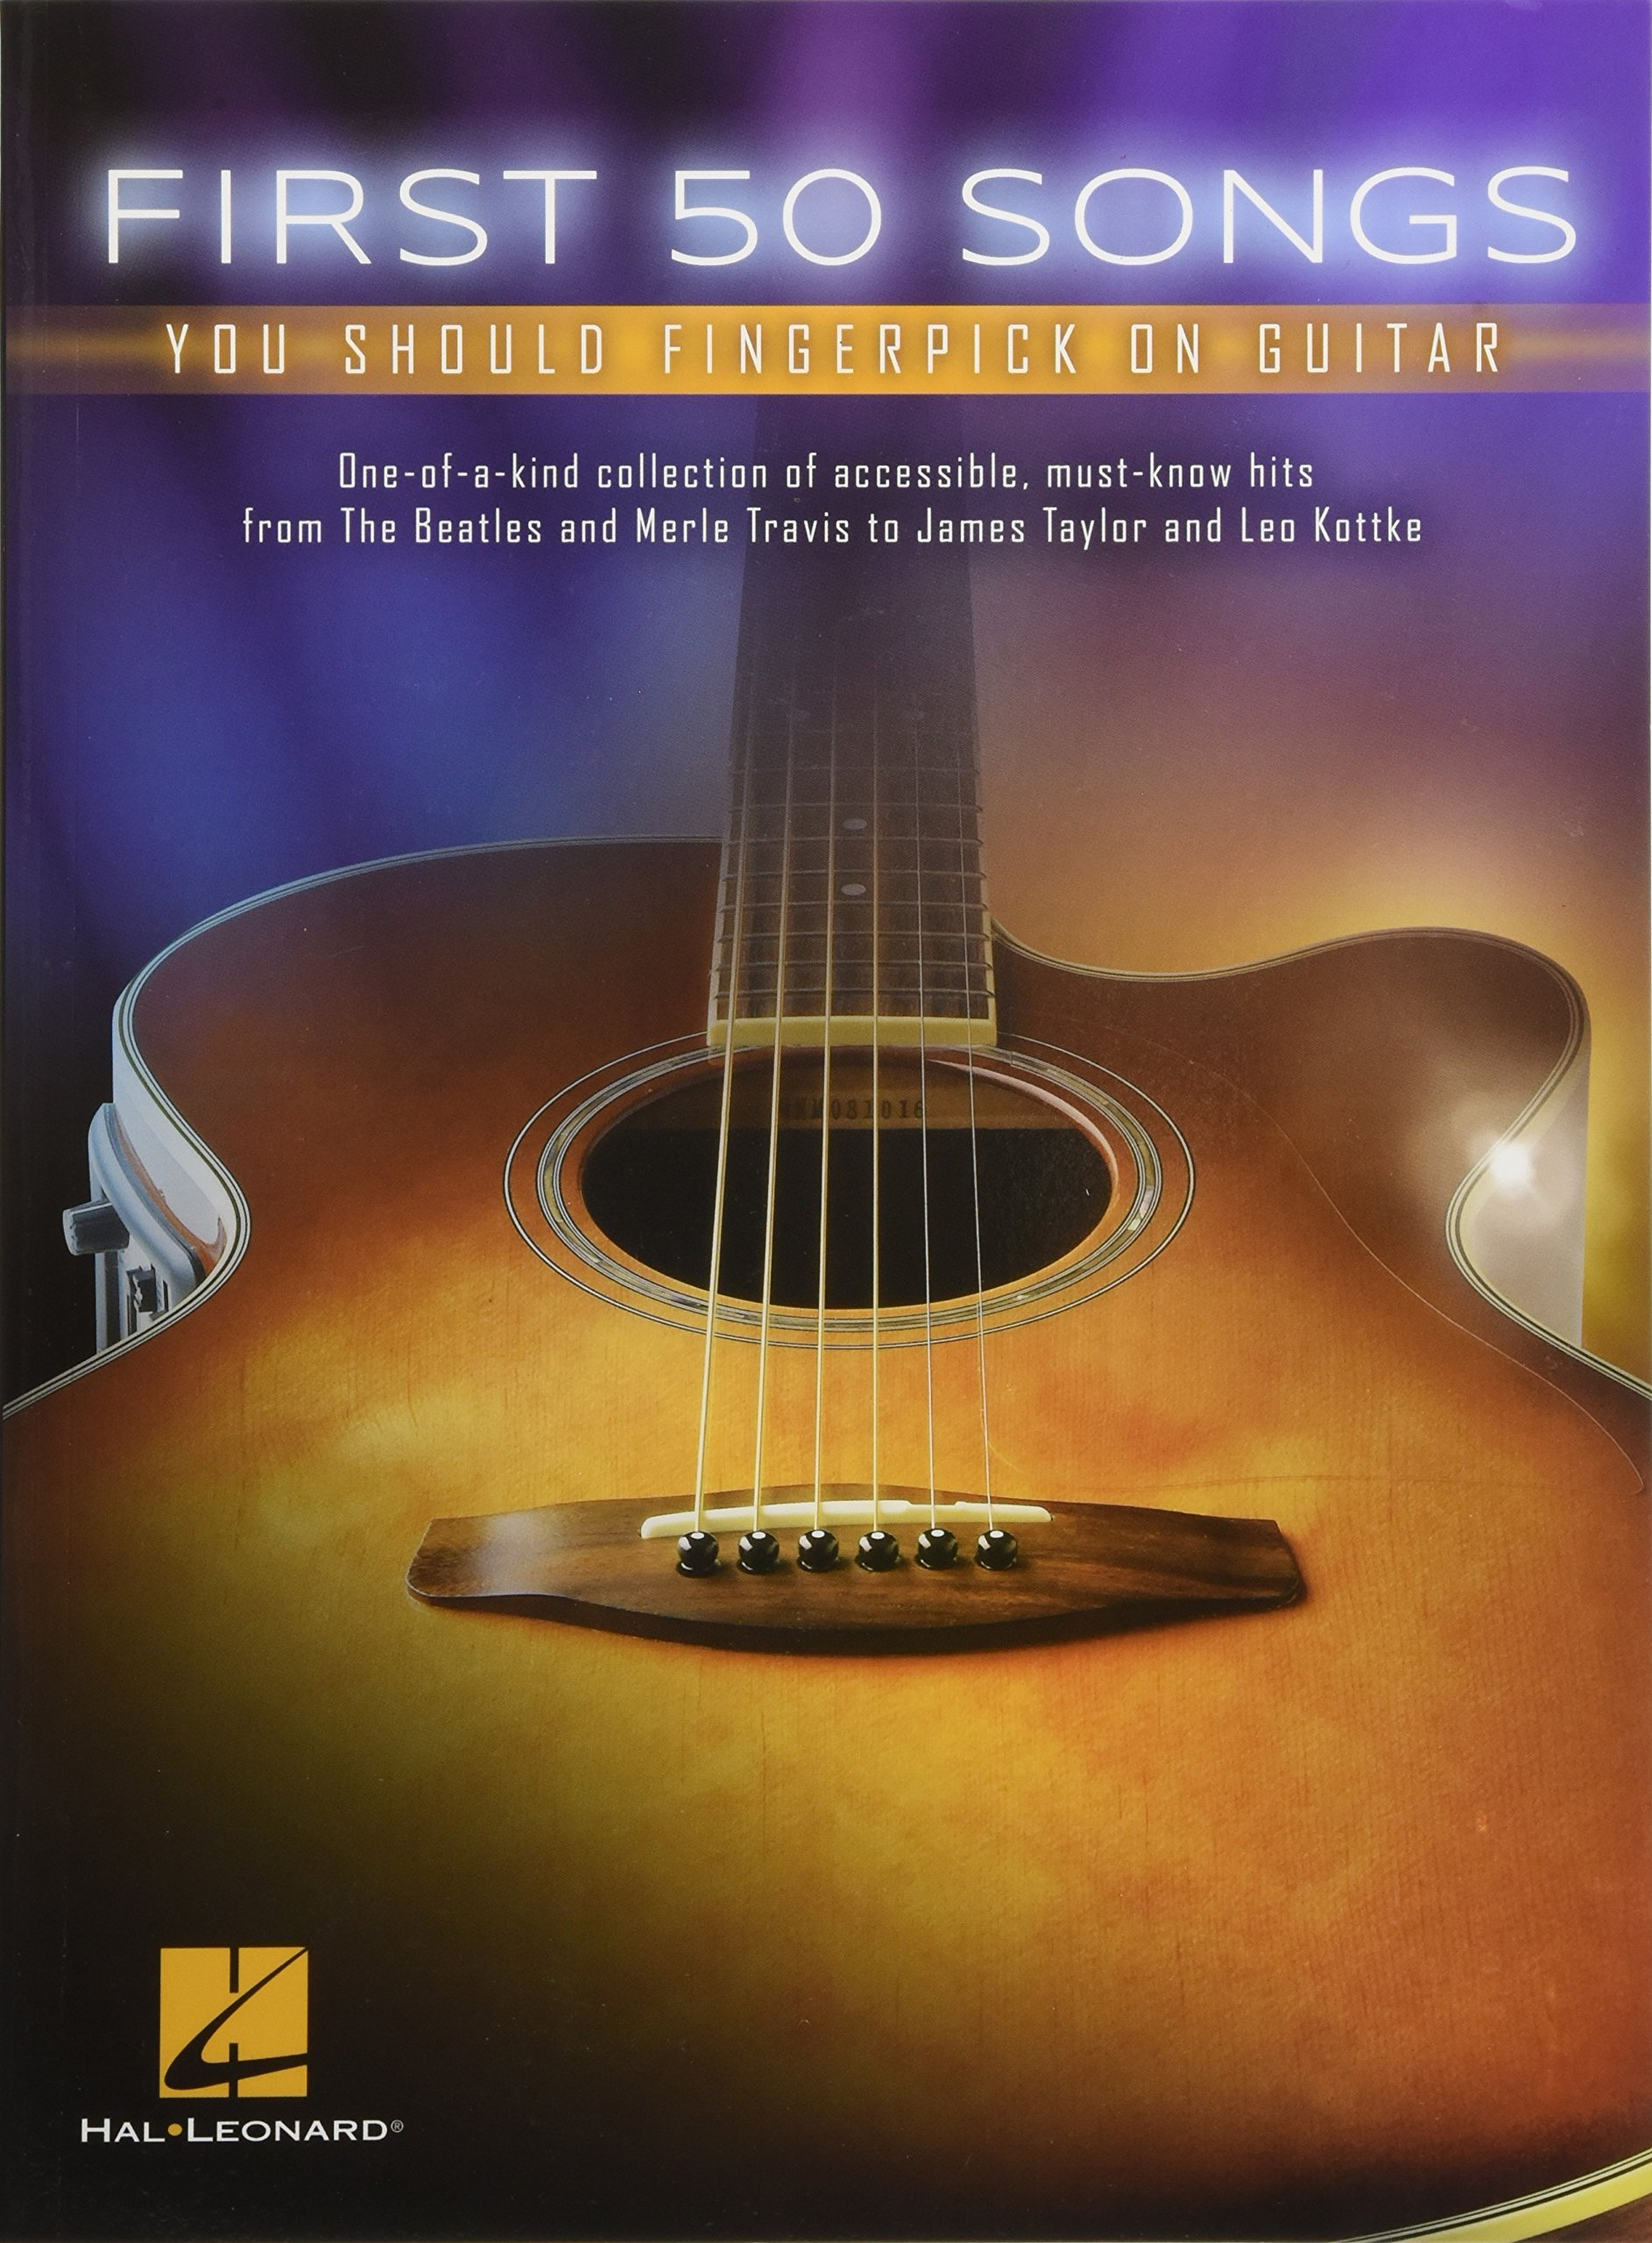 Amazon.com: First 50 Songs You Should Fingerpick On Guitar (9781495031175):  Hal Leonard Corp.: Books